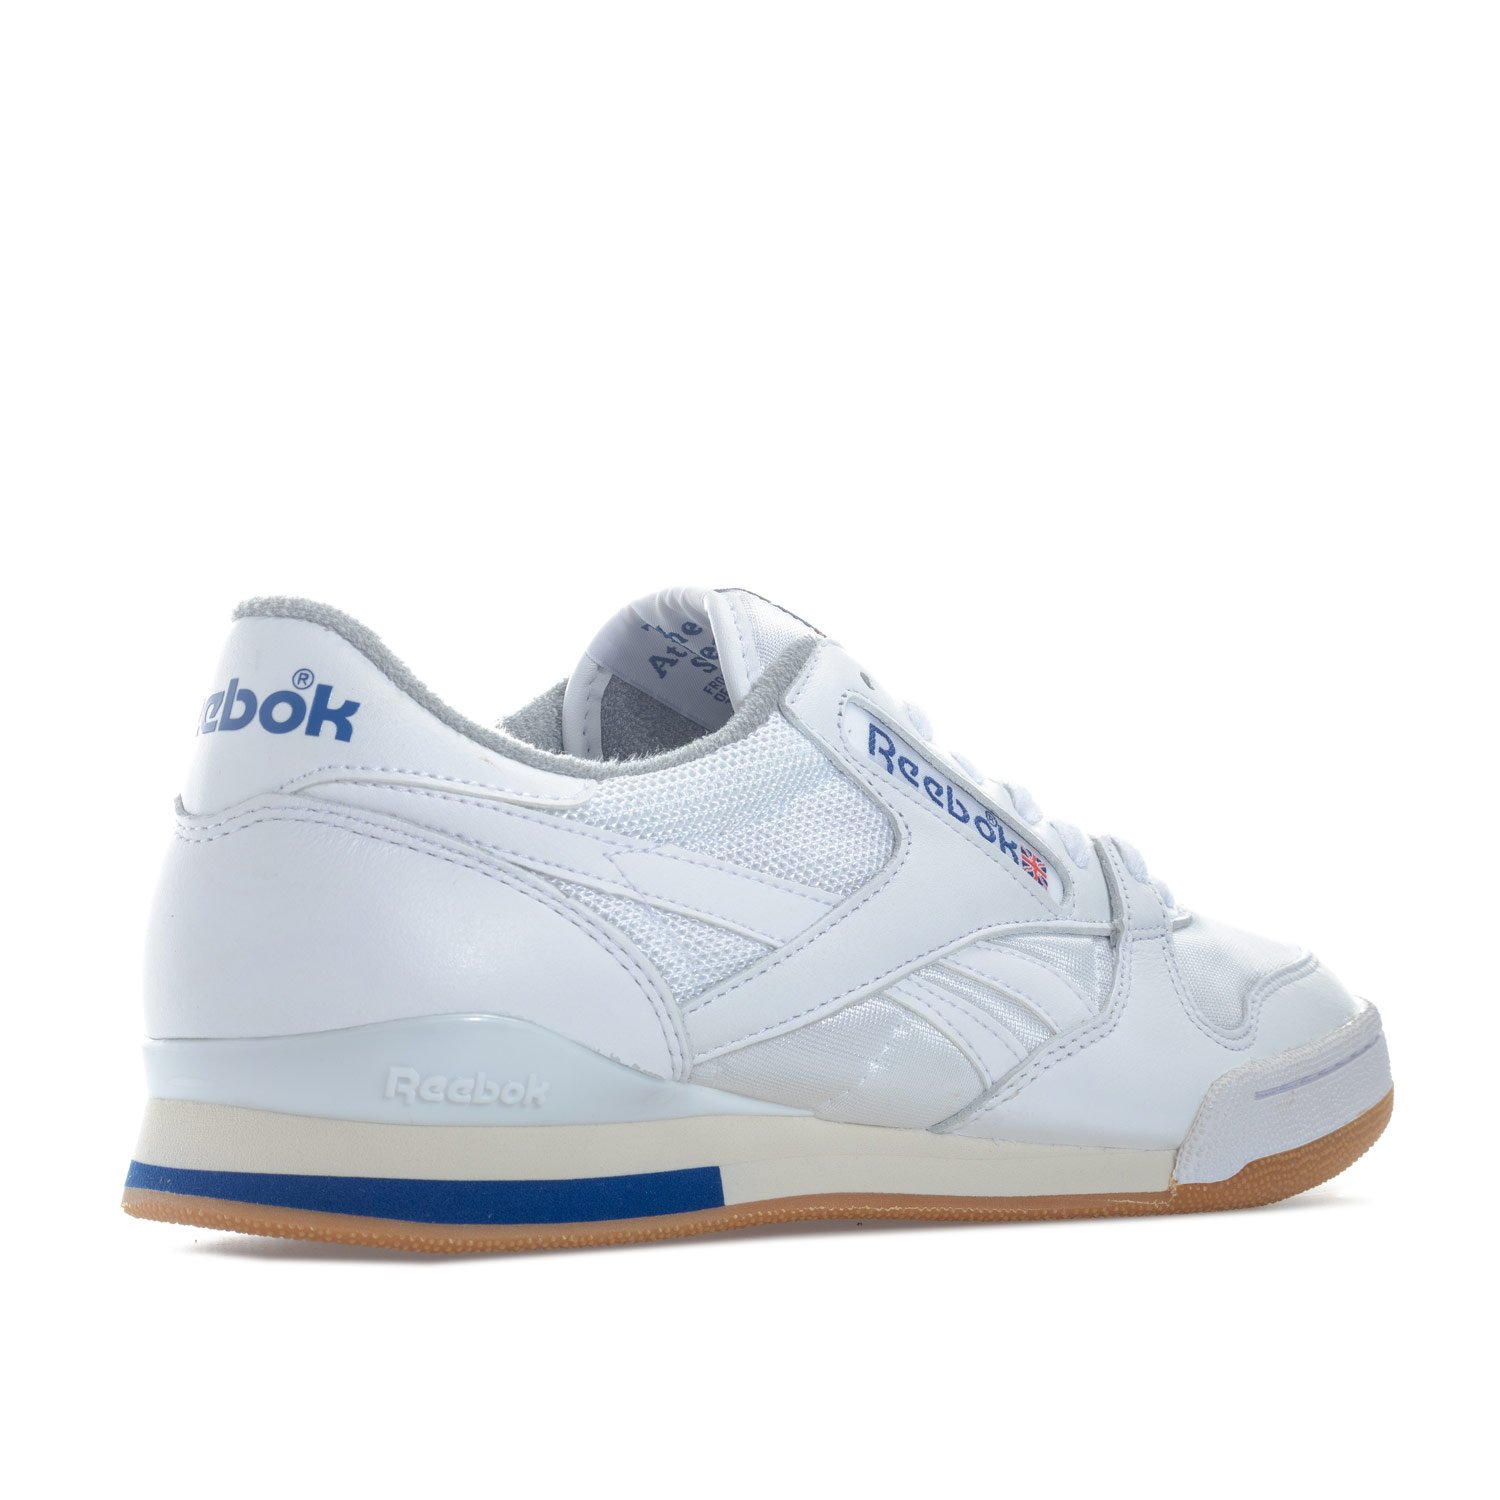 6f6047f3a5f Reebok Classics Mens Phase 1 Pro Trainers in White  Amazon.co.uk  Sports    Outdoors